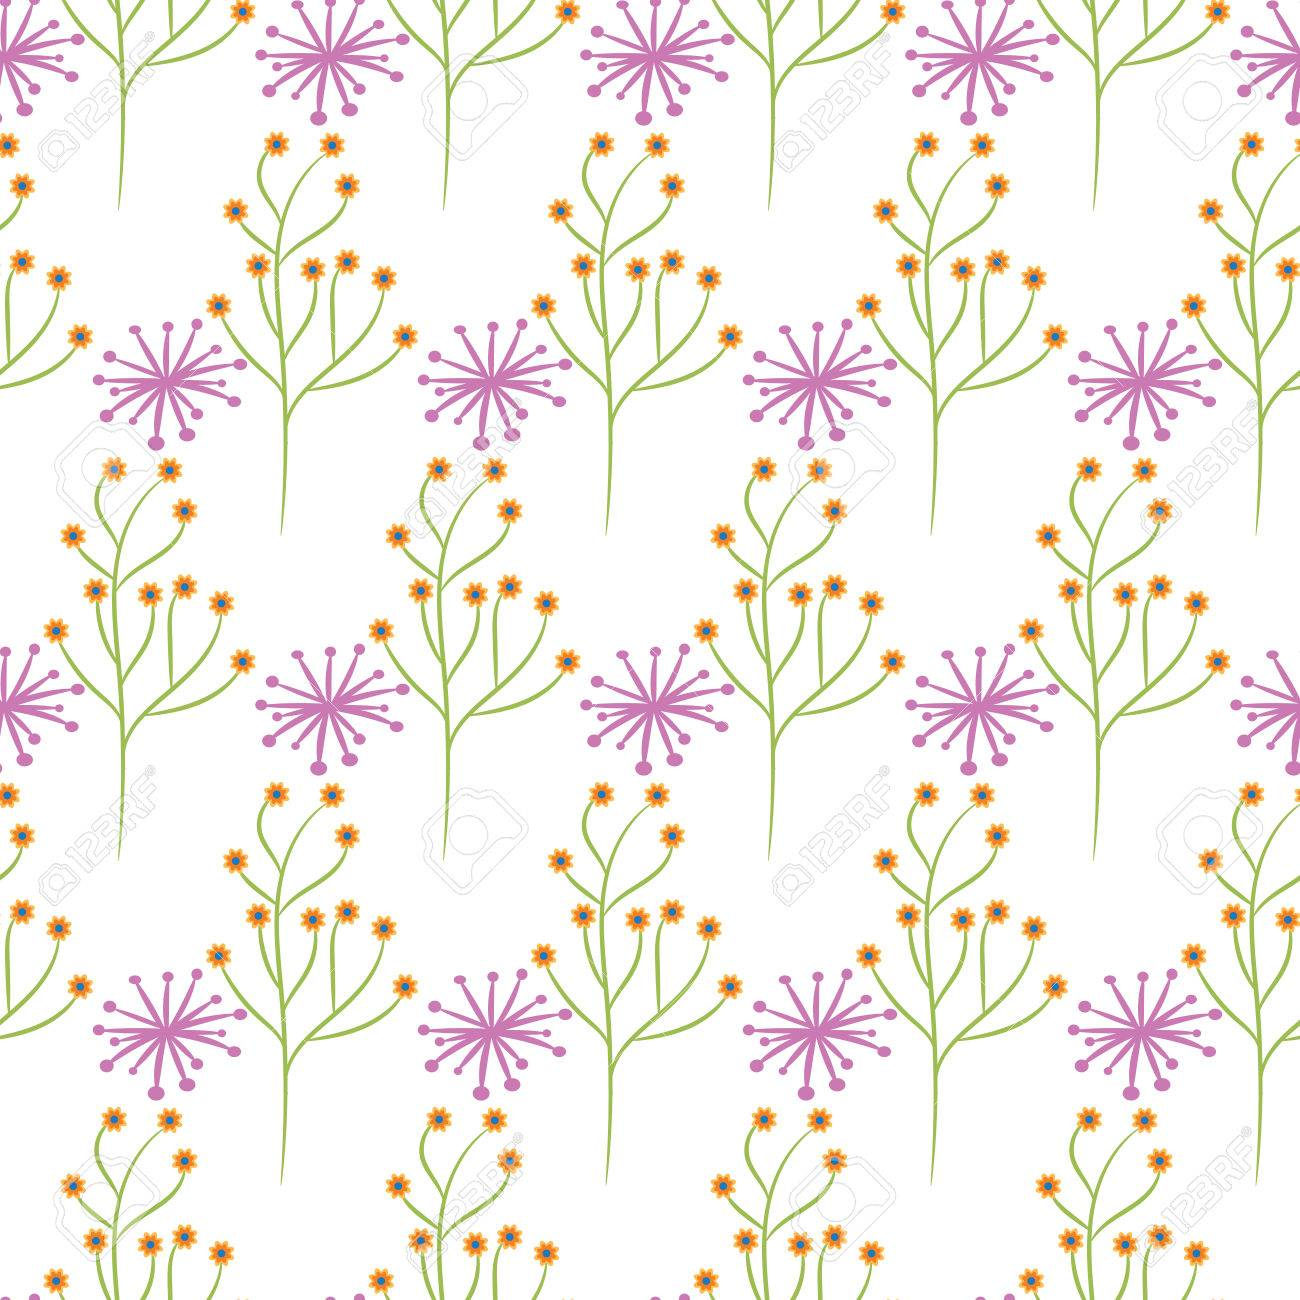 Wild Flower Spring Pink And Green Field Seamless Pattern Floral